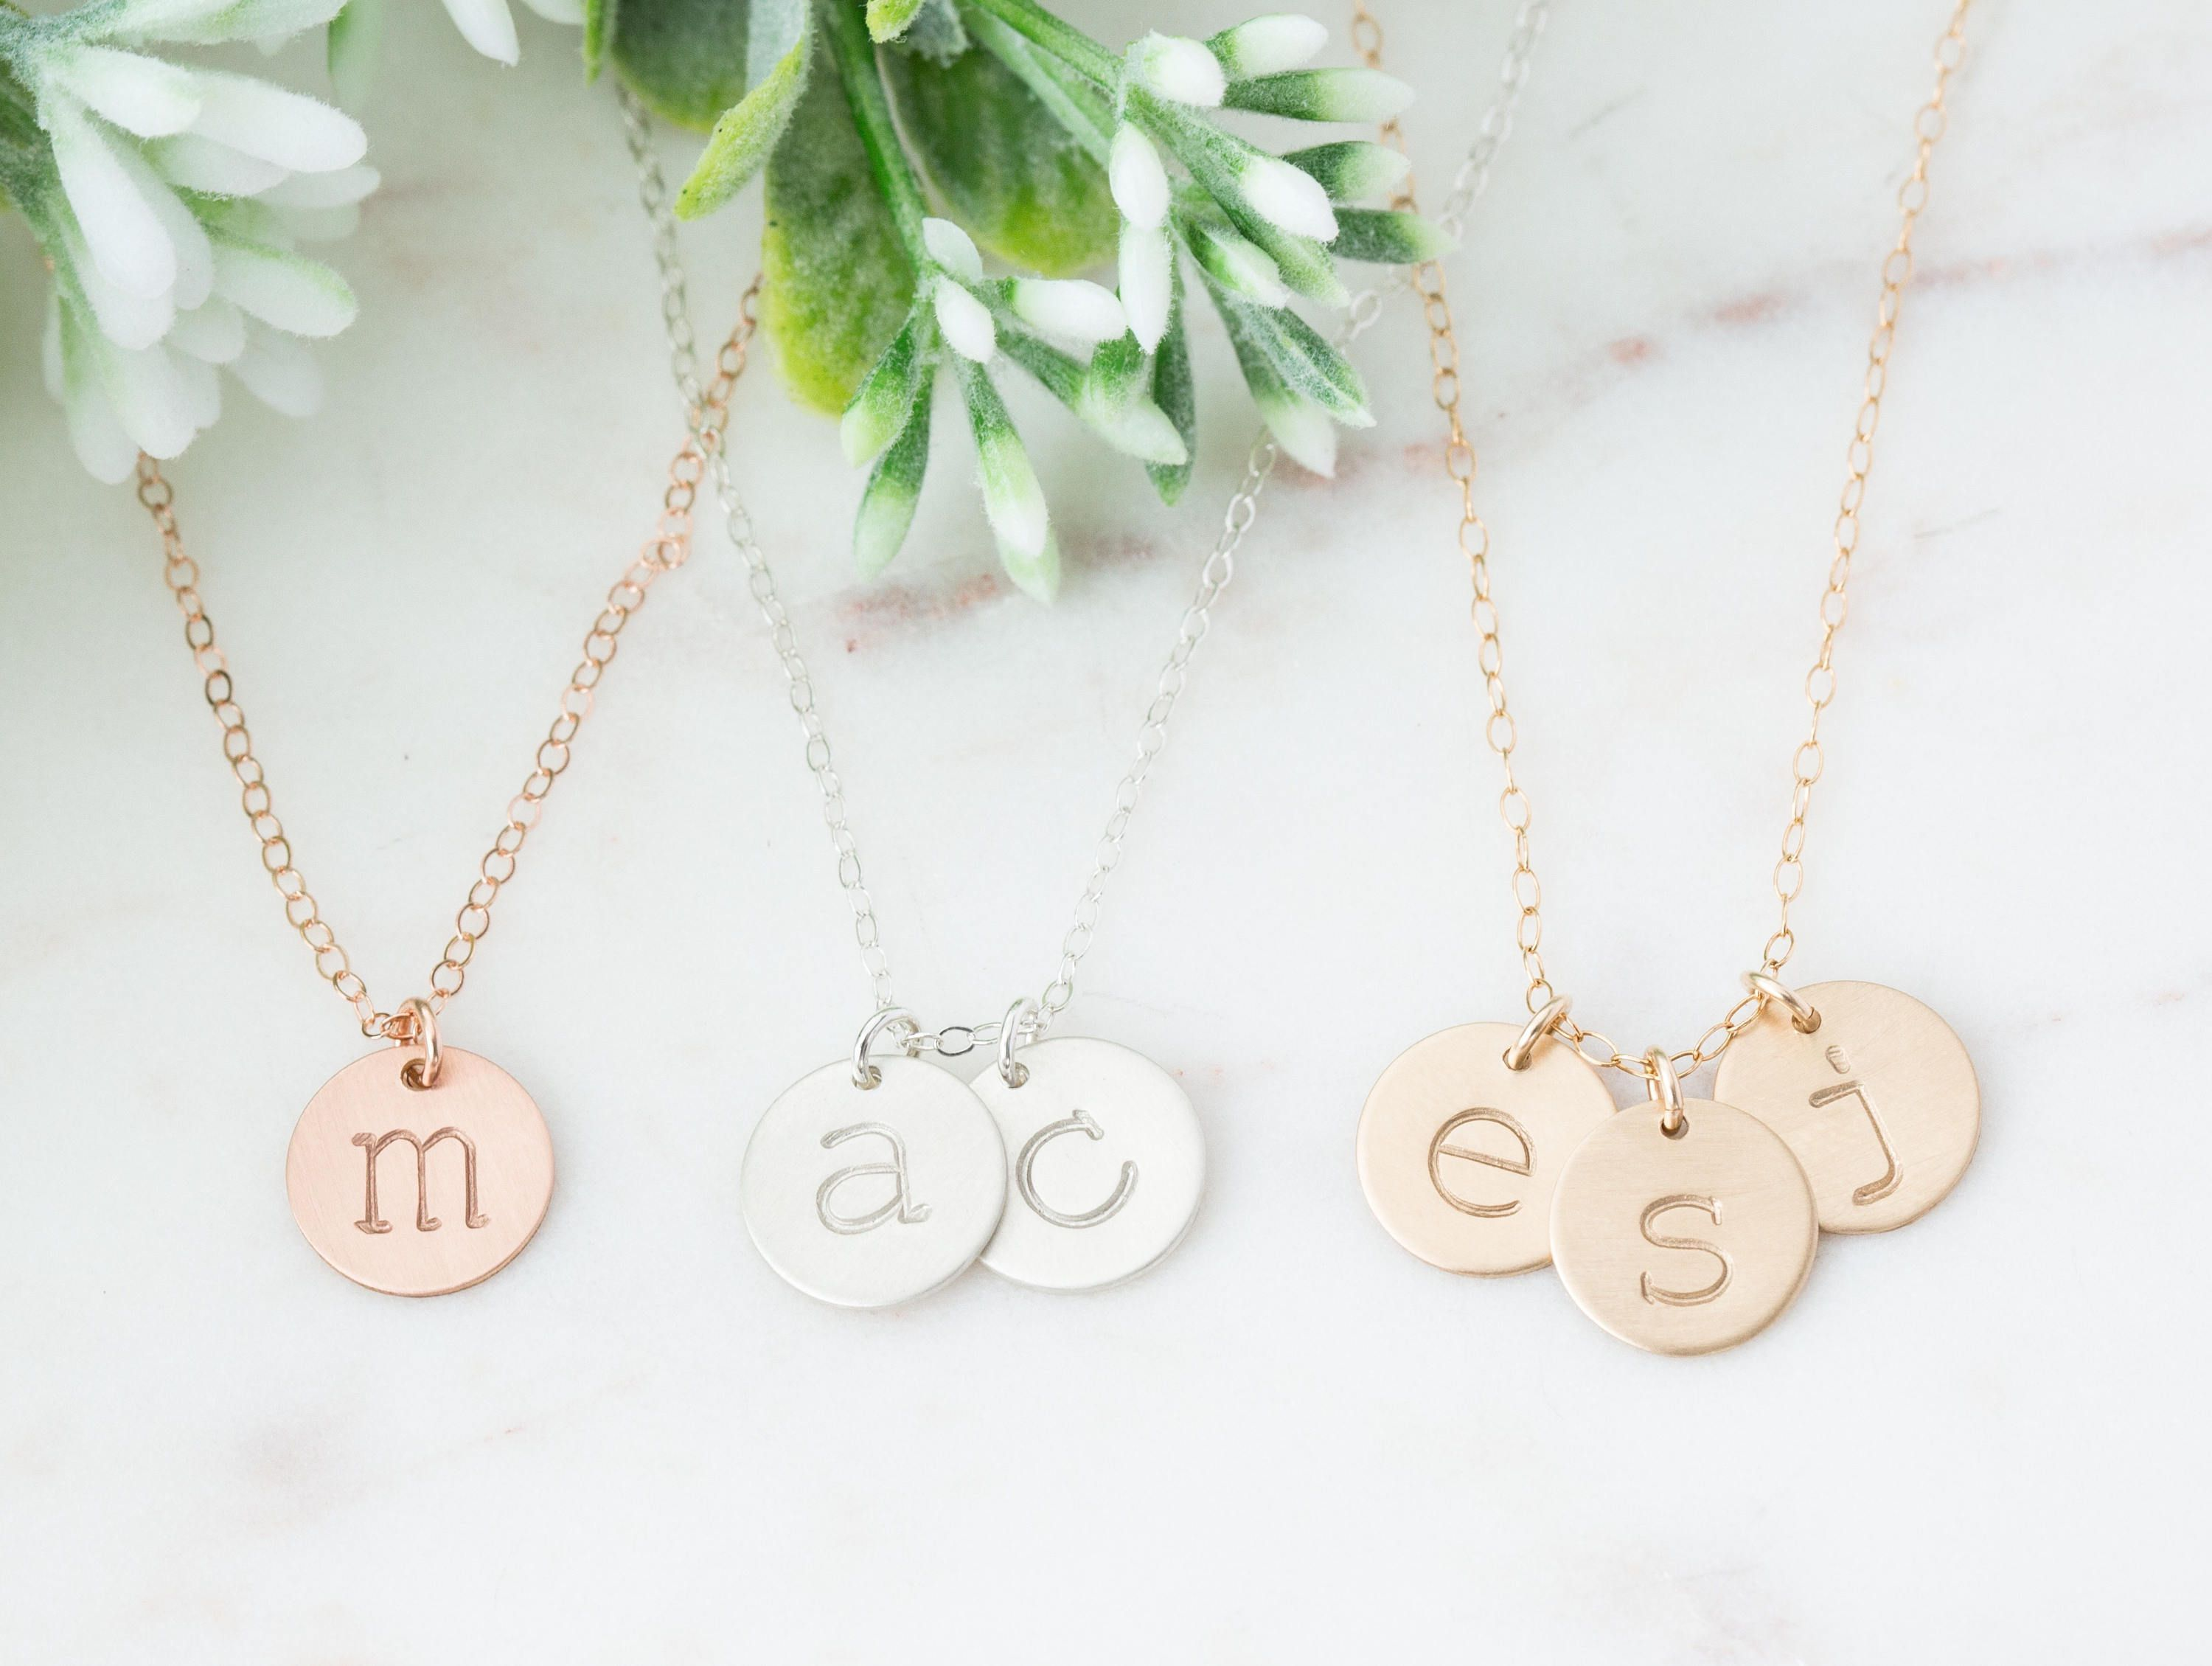 15 Thoughtful Gifts New Moms Will Really Cherish